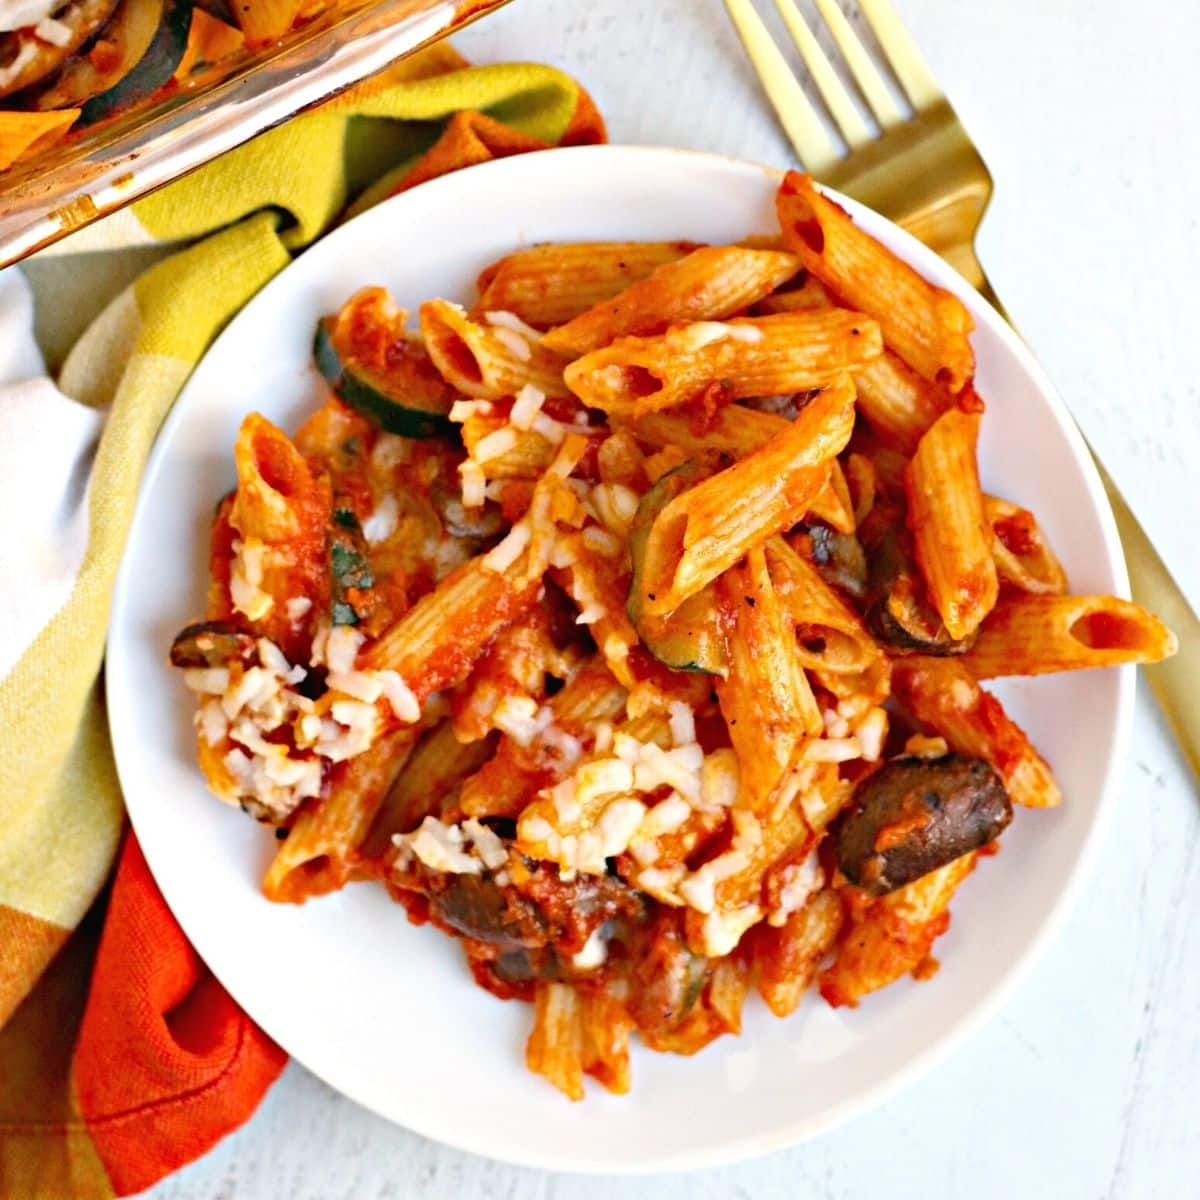 Baked pasta on a plate with a fork